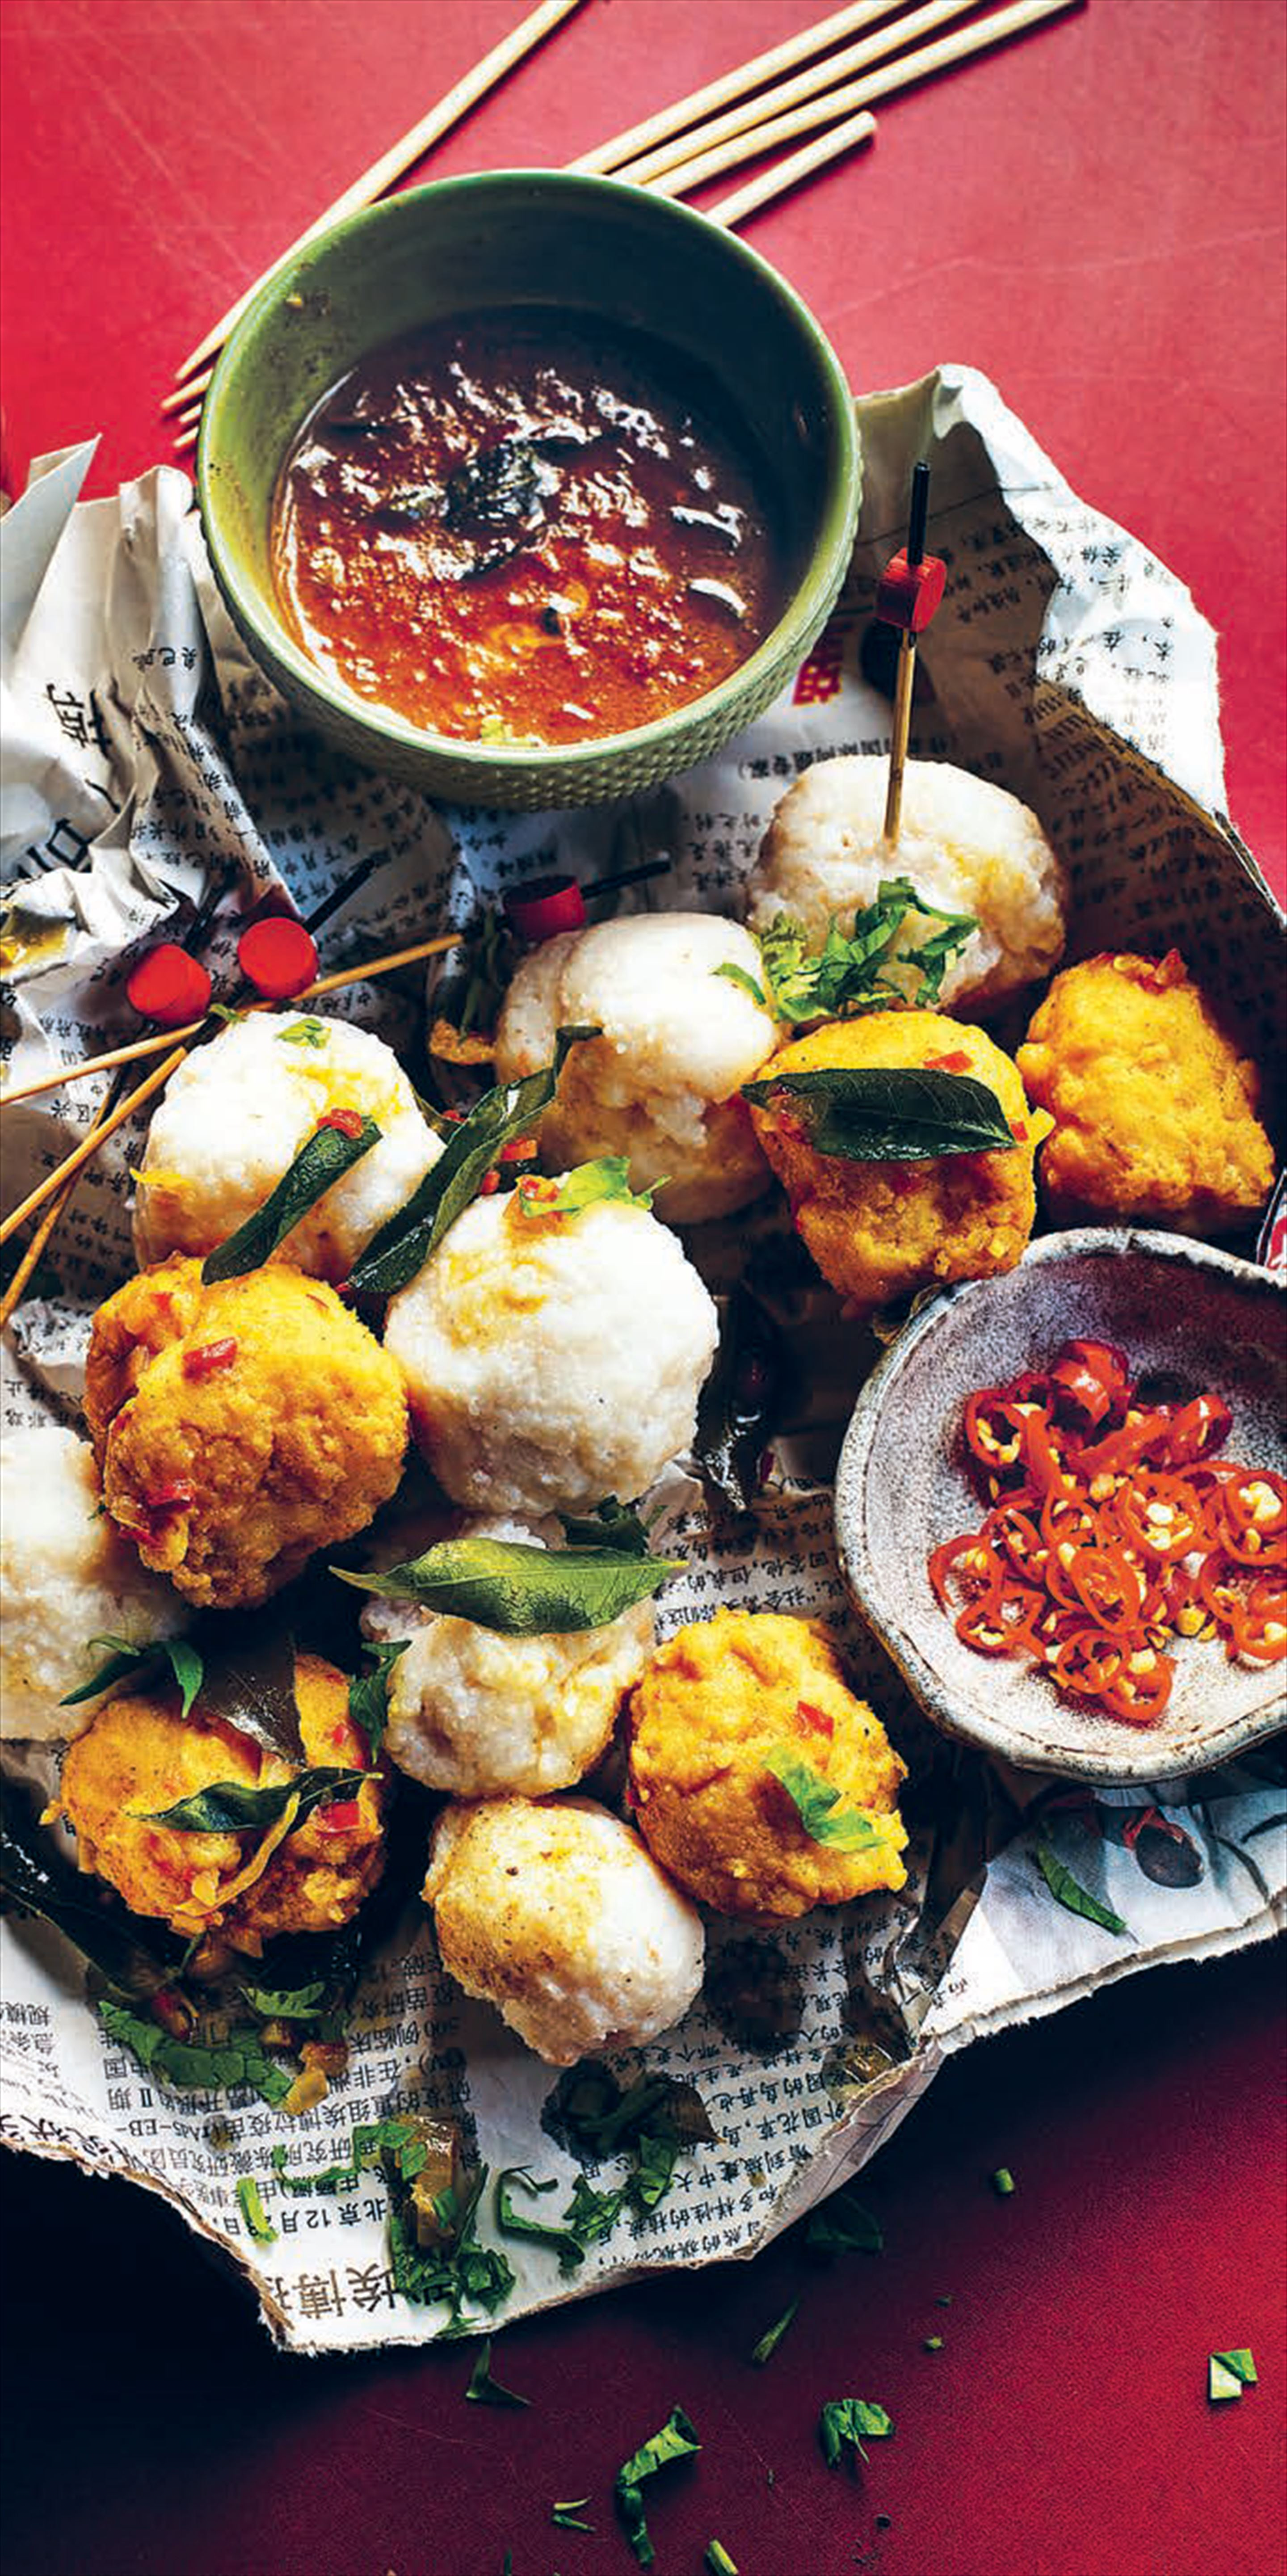 Hong kong classic curried fish balls